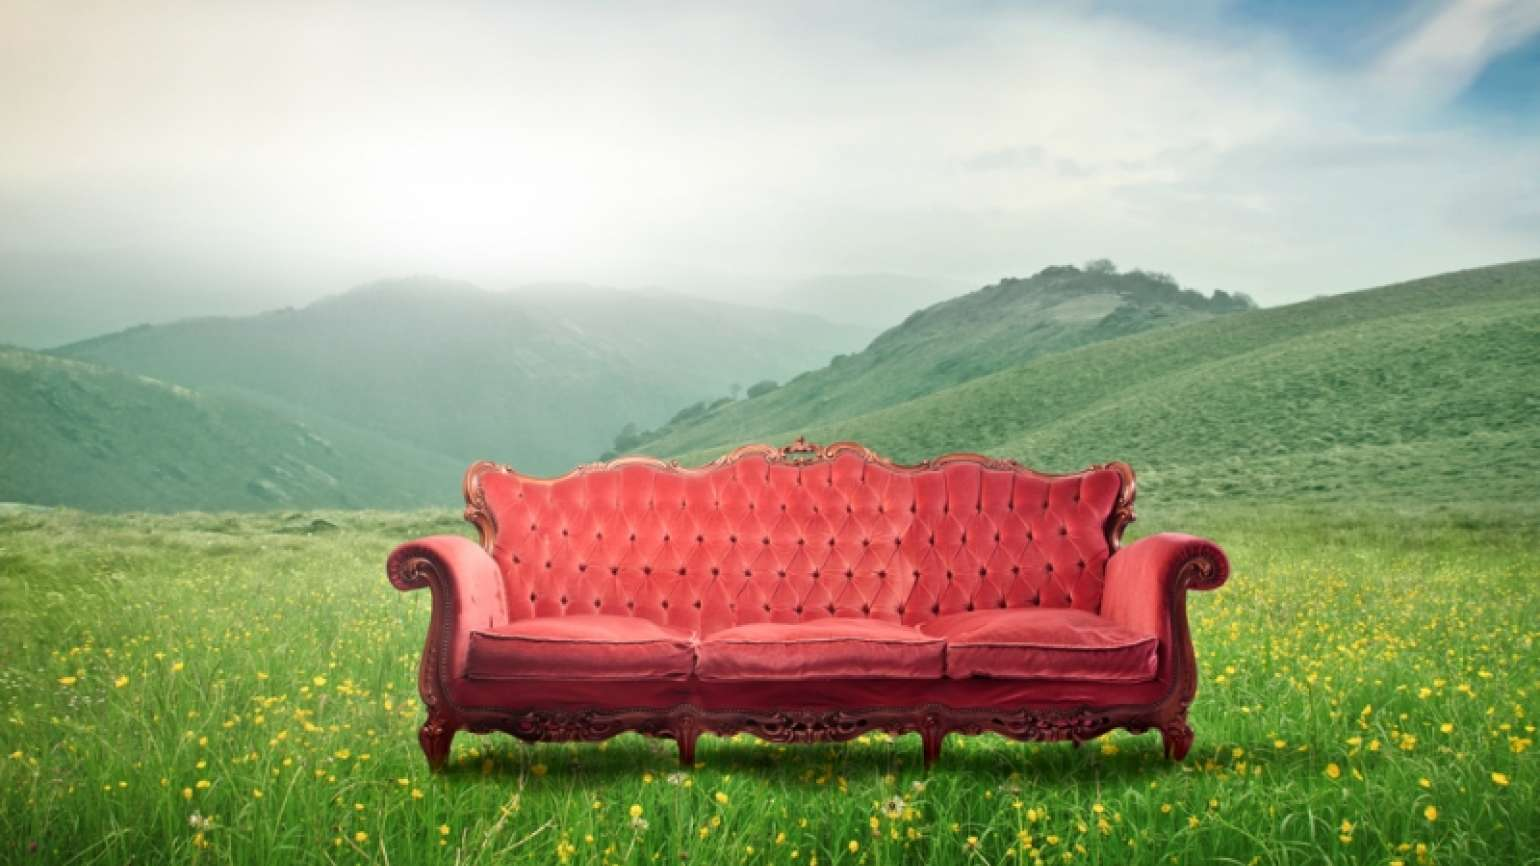 A couch in a beautiful outdoor setting with mountains in the background